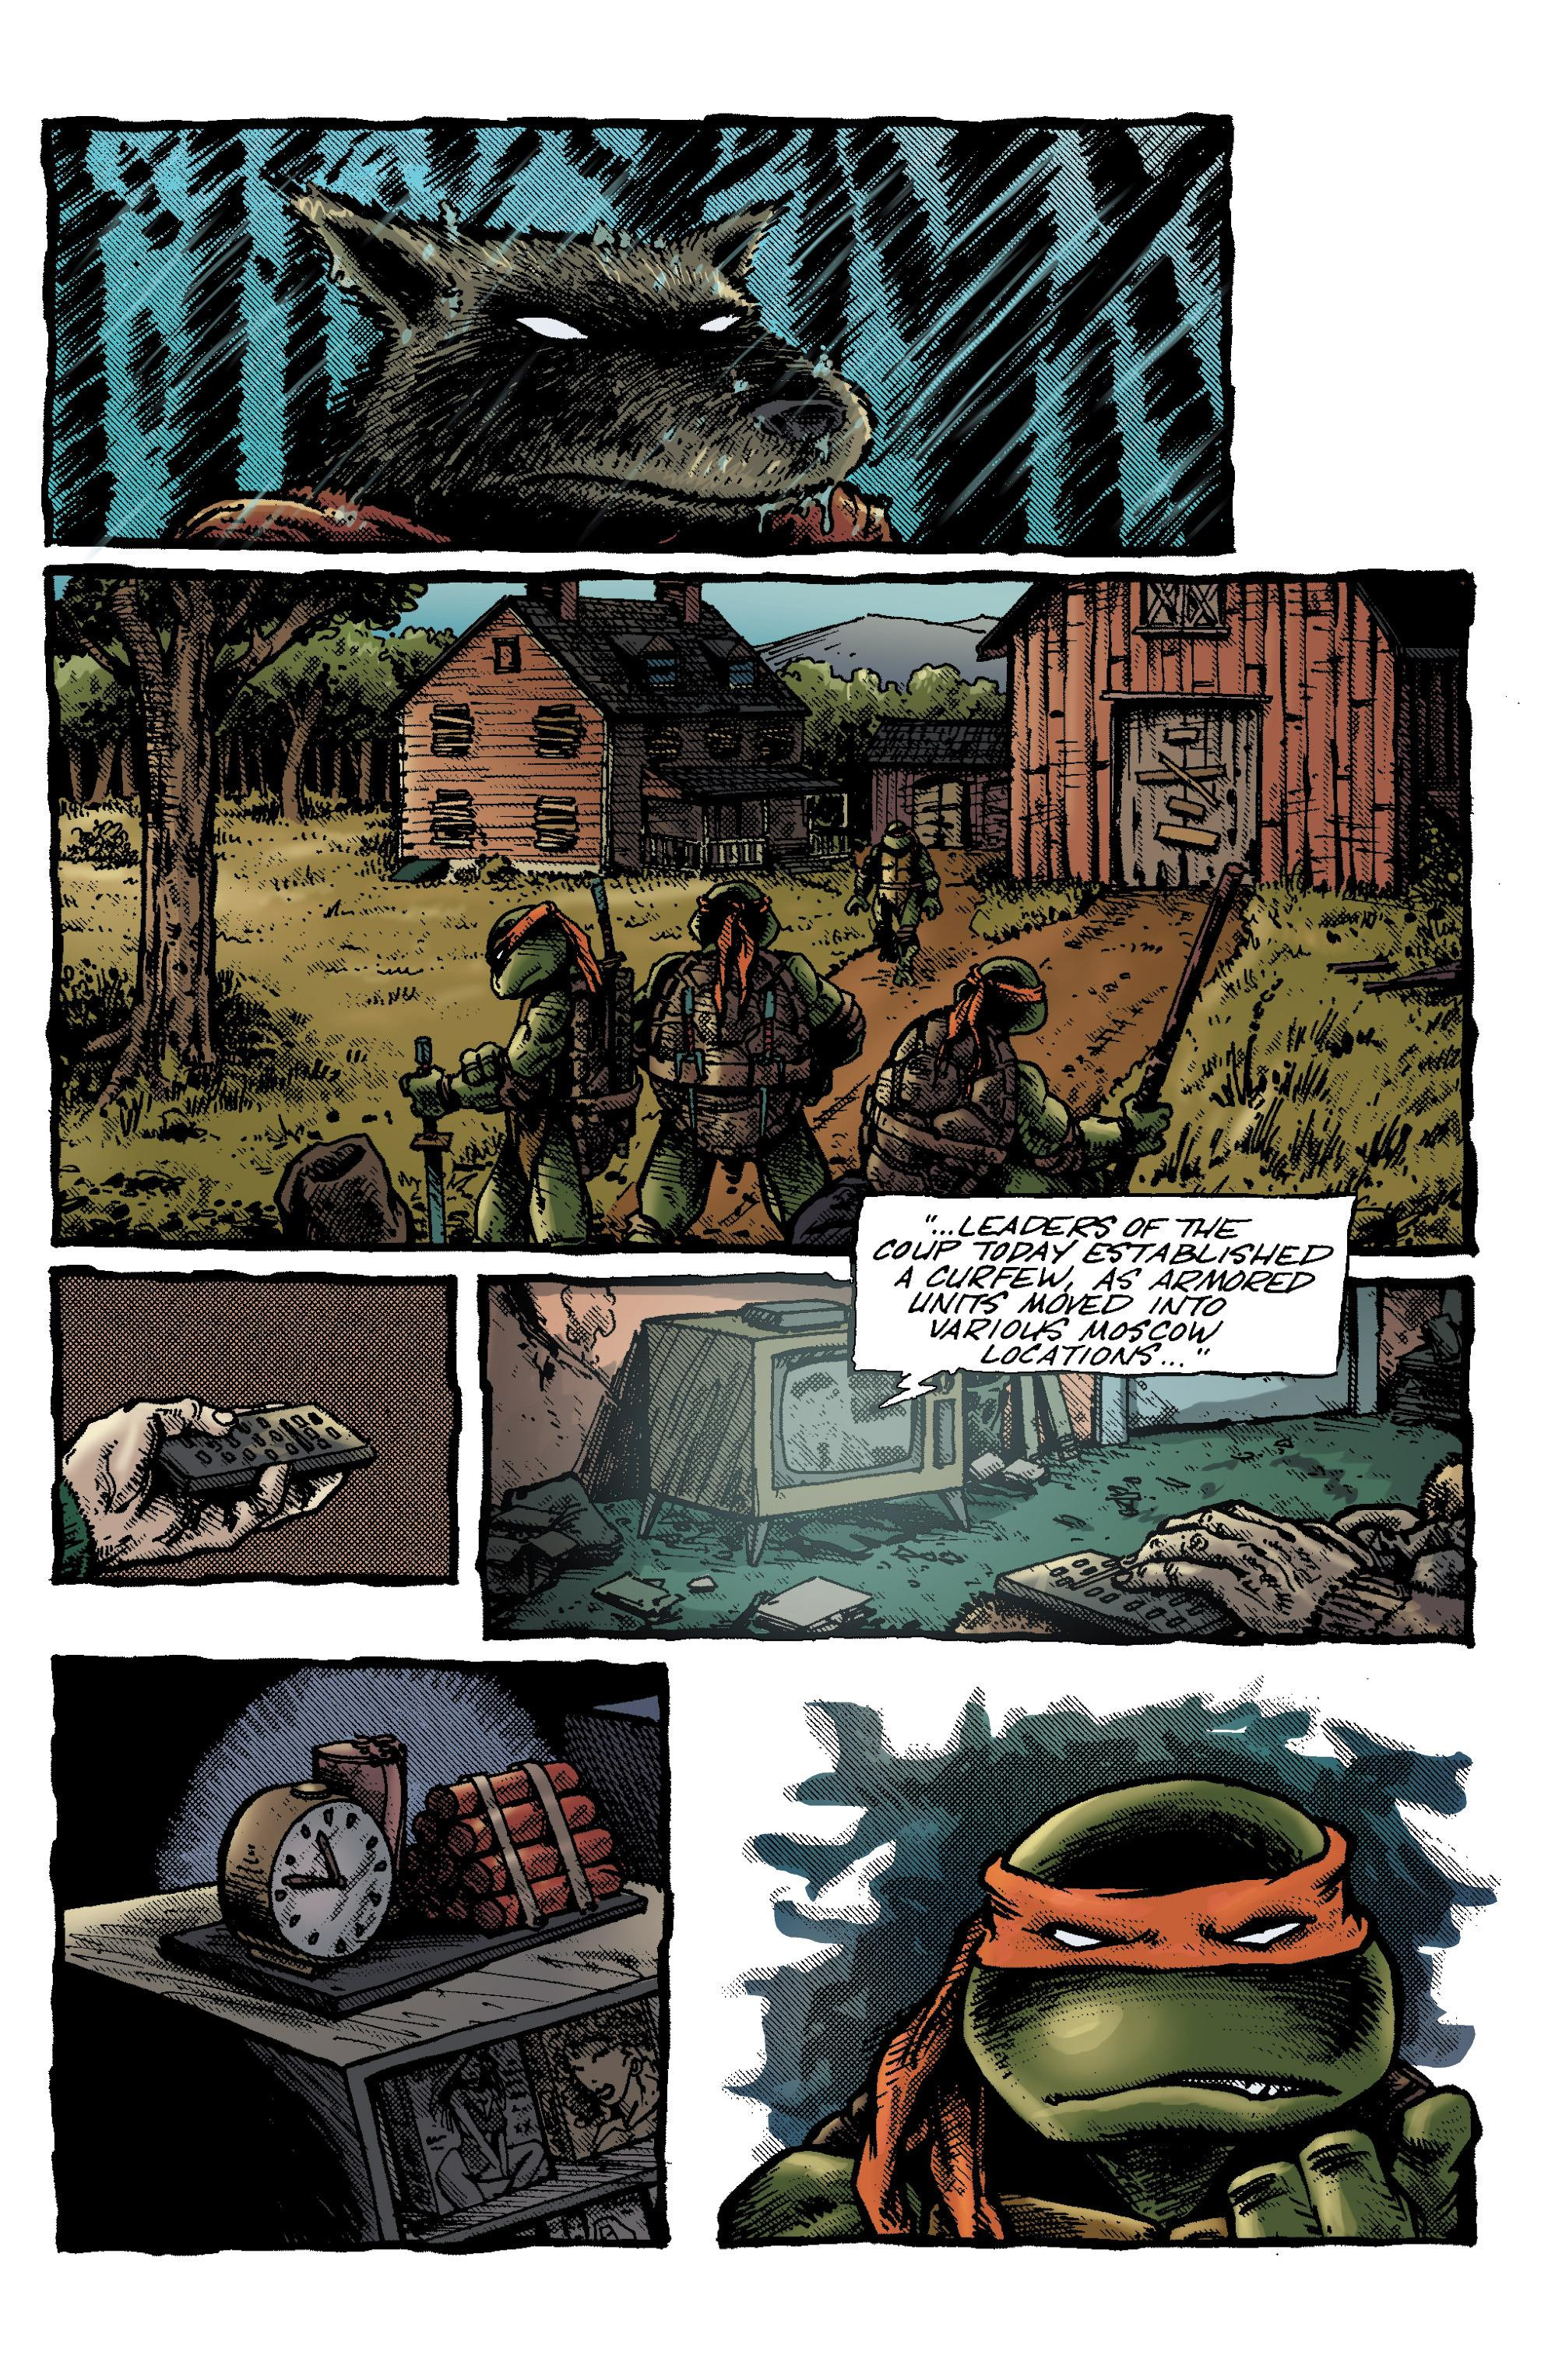 Eastman & Laird's Teenage Mutant Ninja Turtles The Works Volume 4 Review